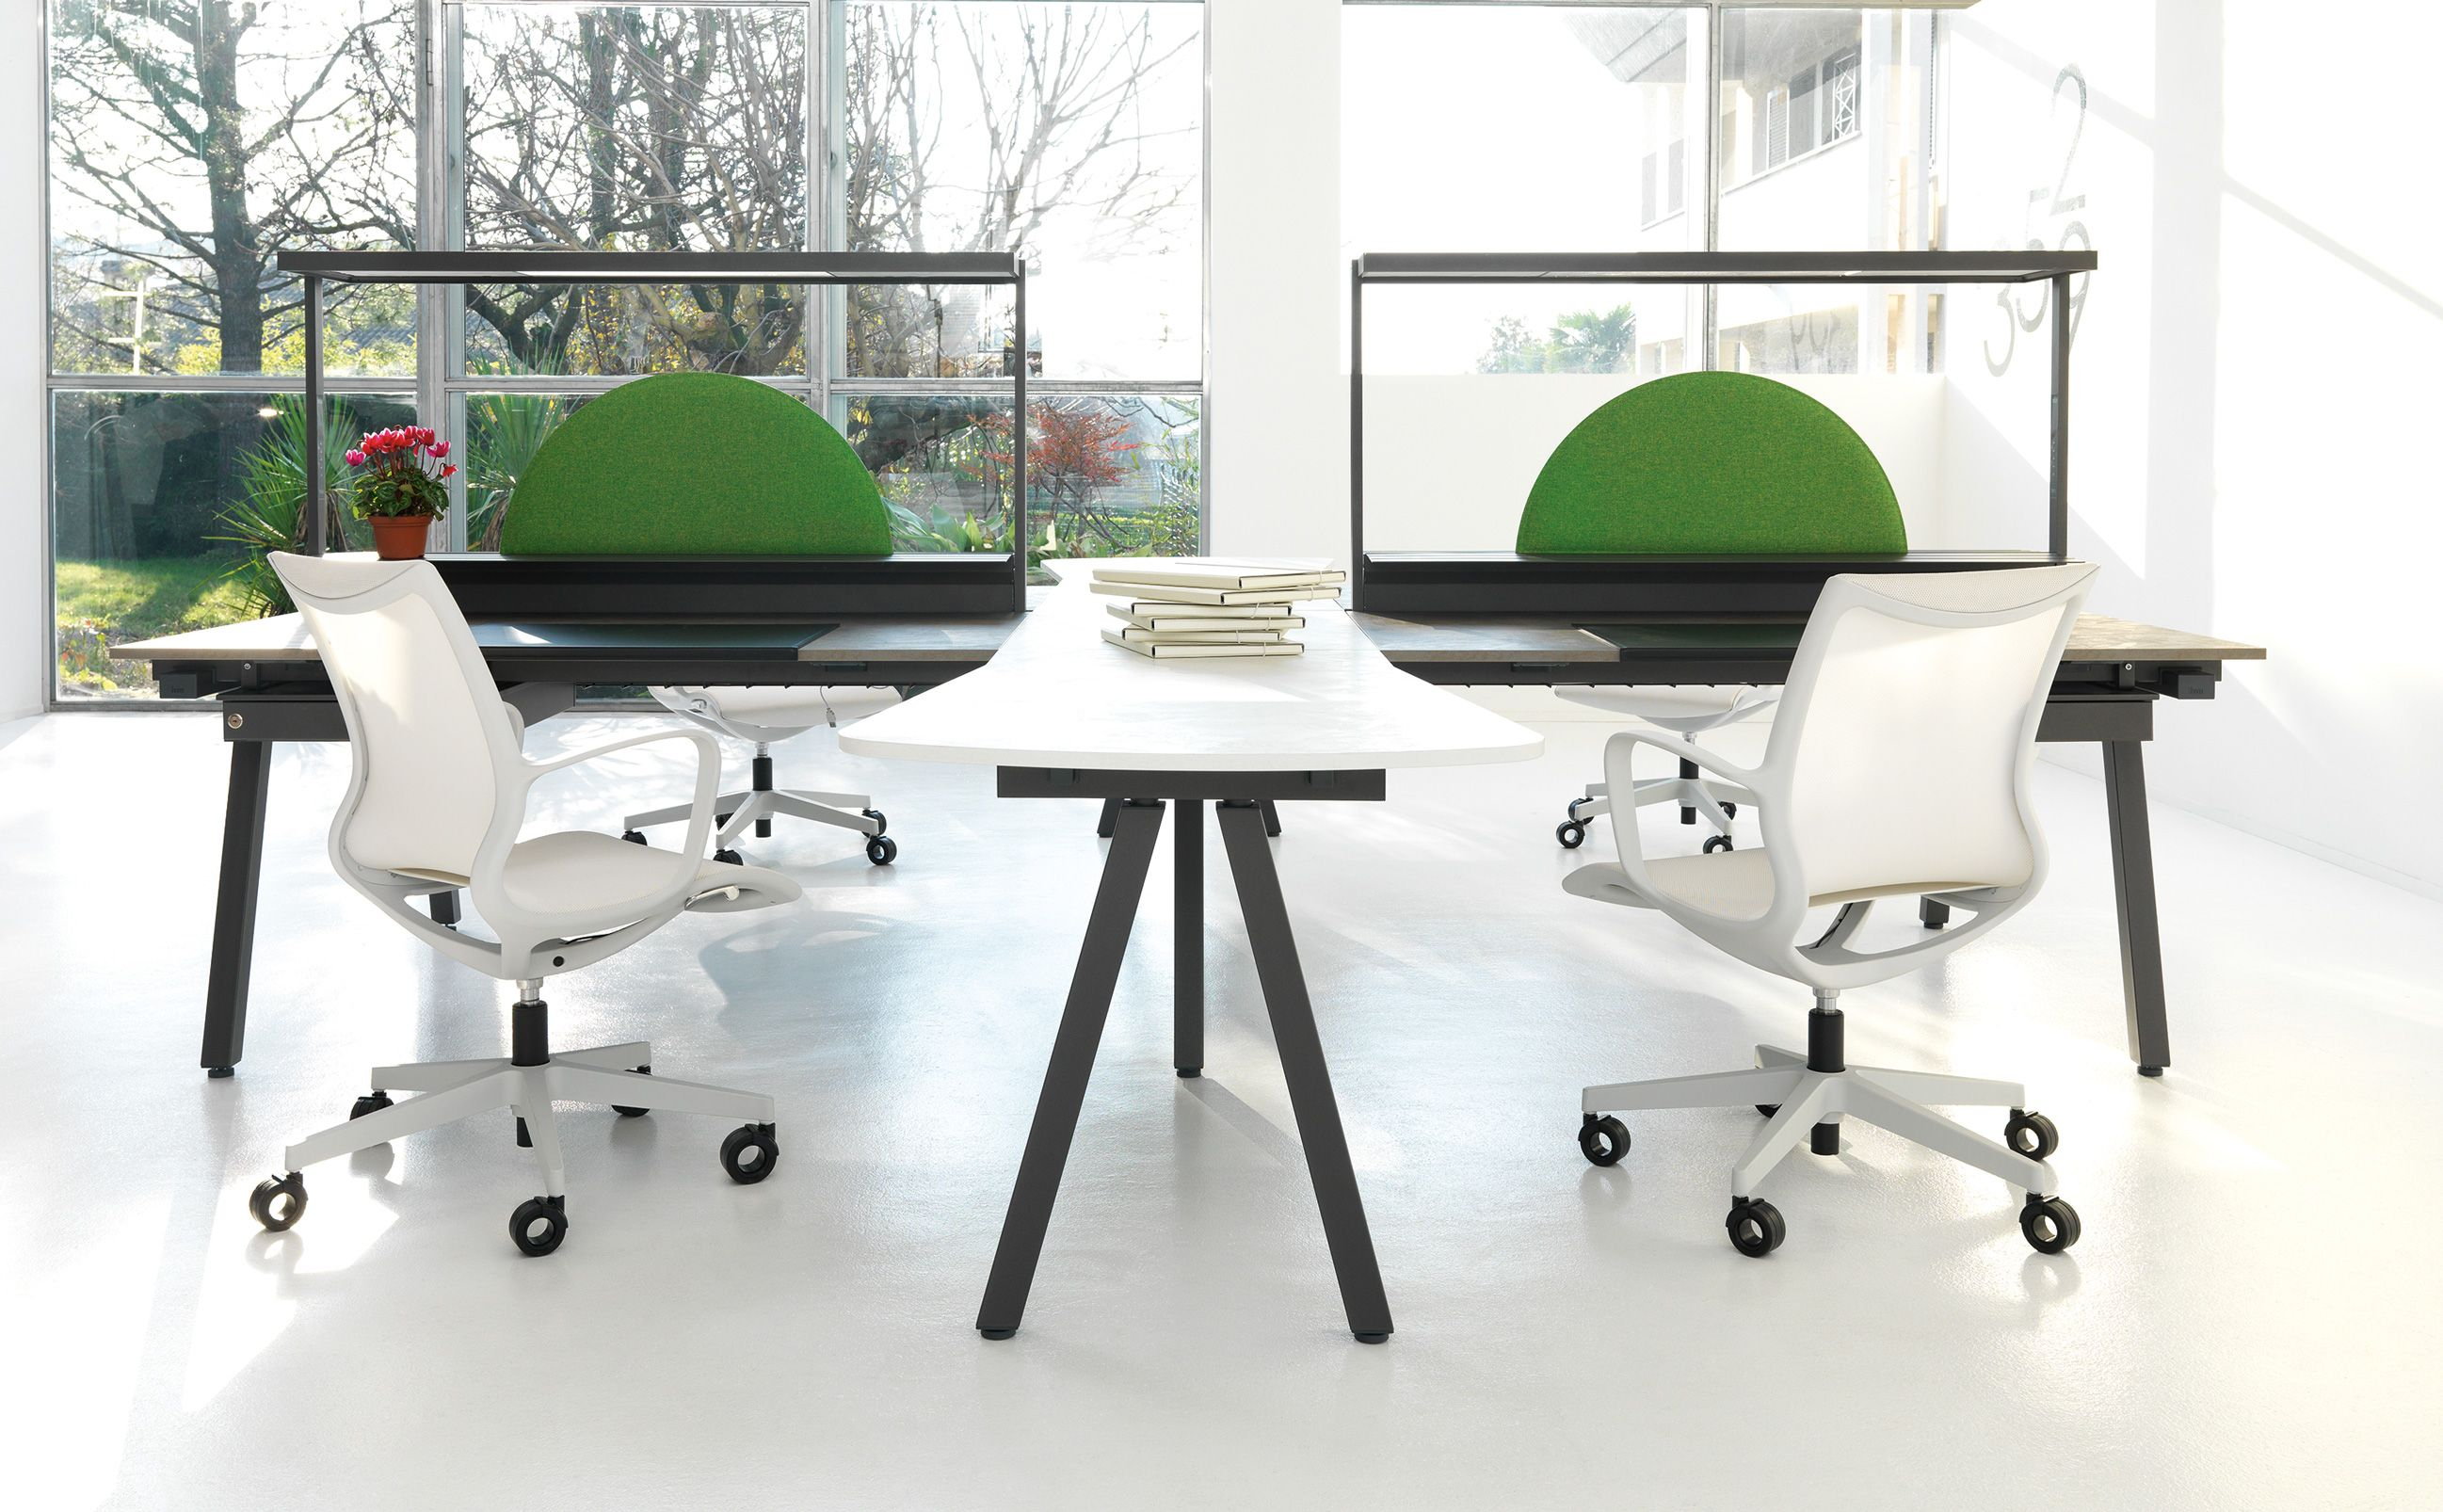 New lines of innovative office furniture launched in Milan by IVM